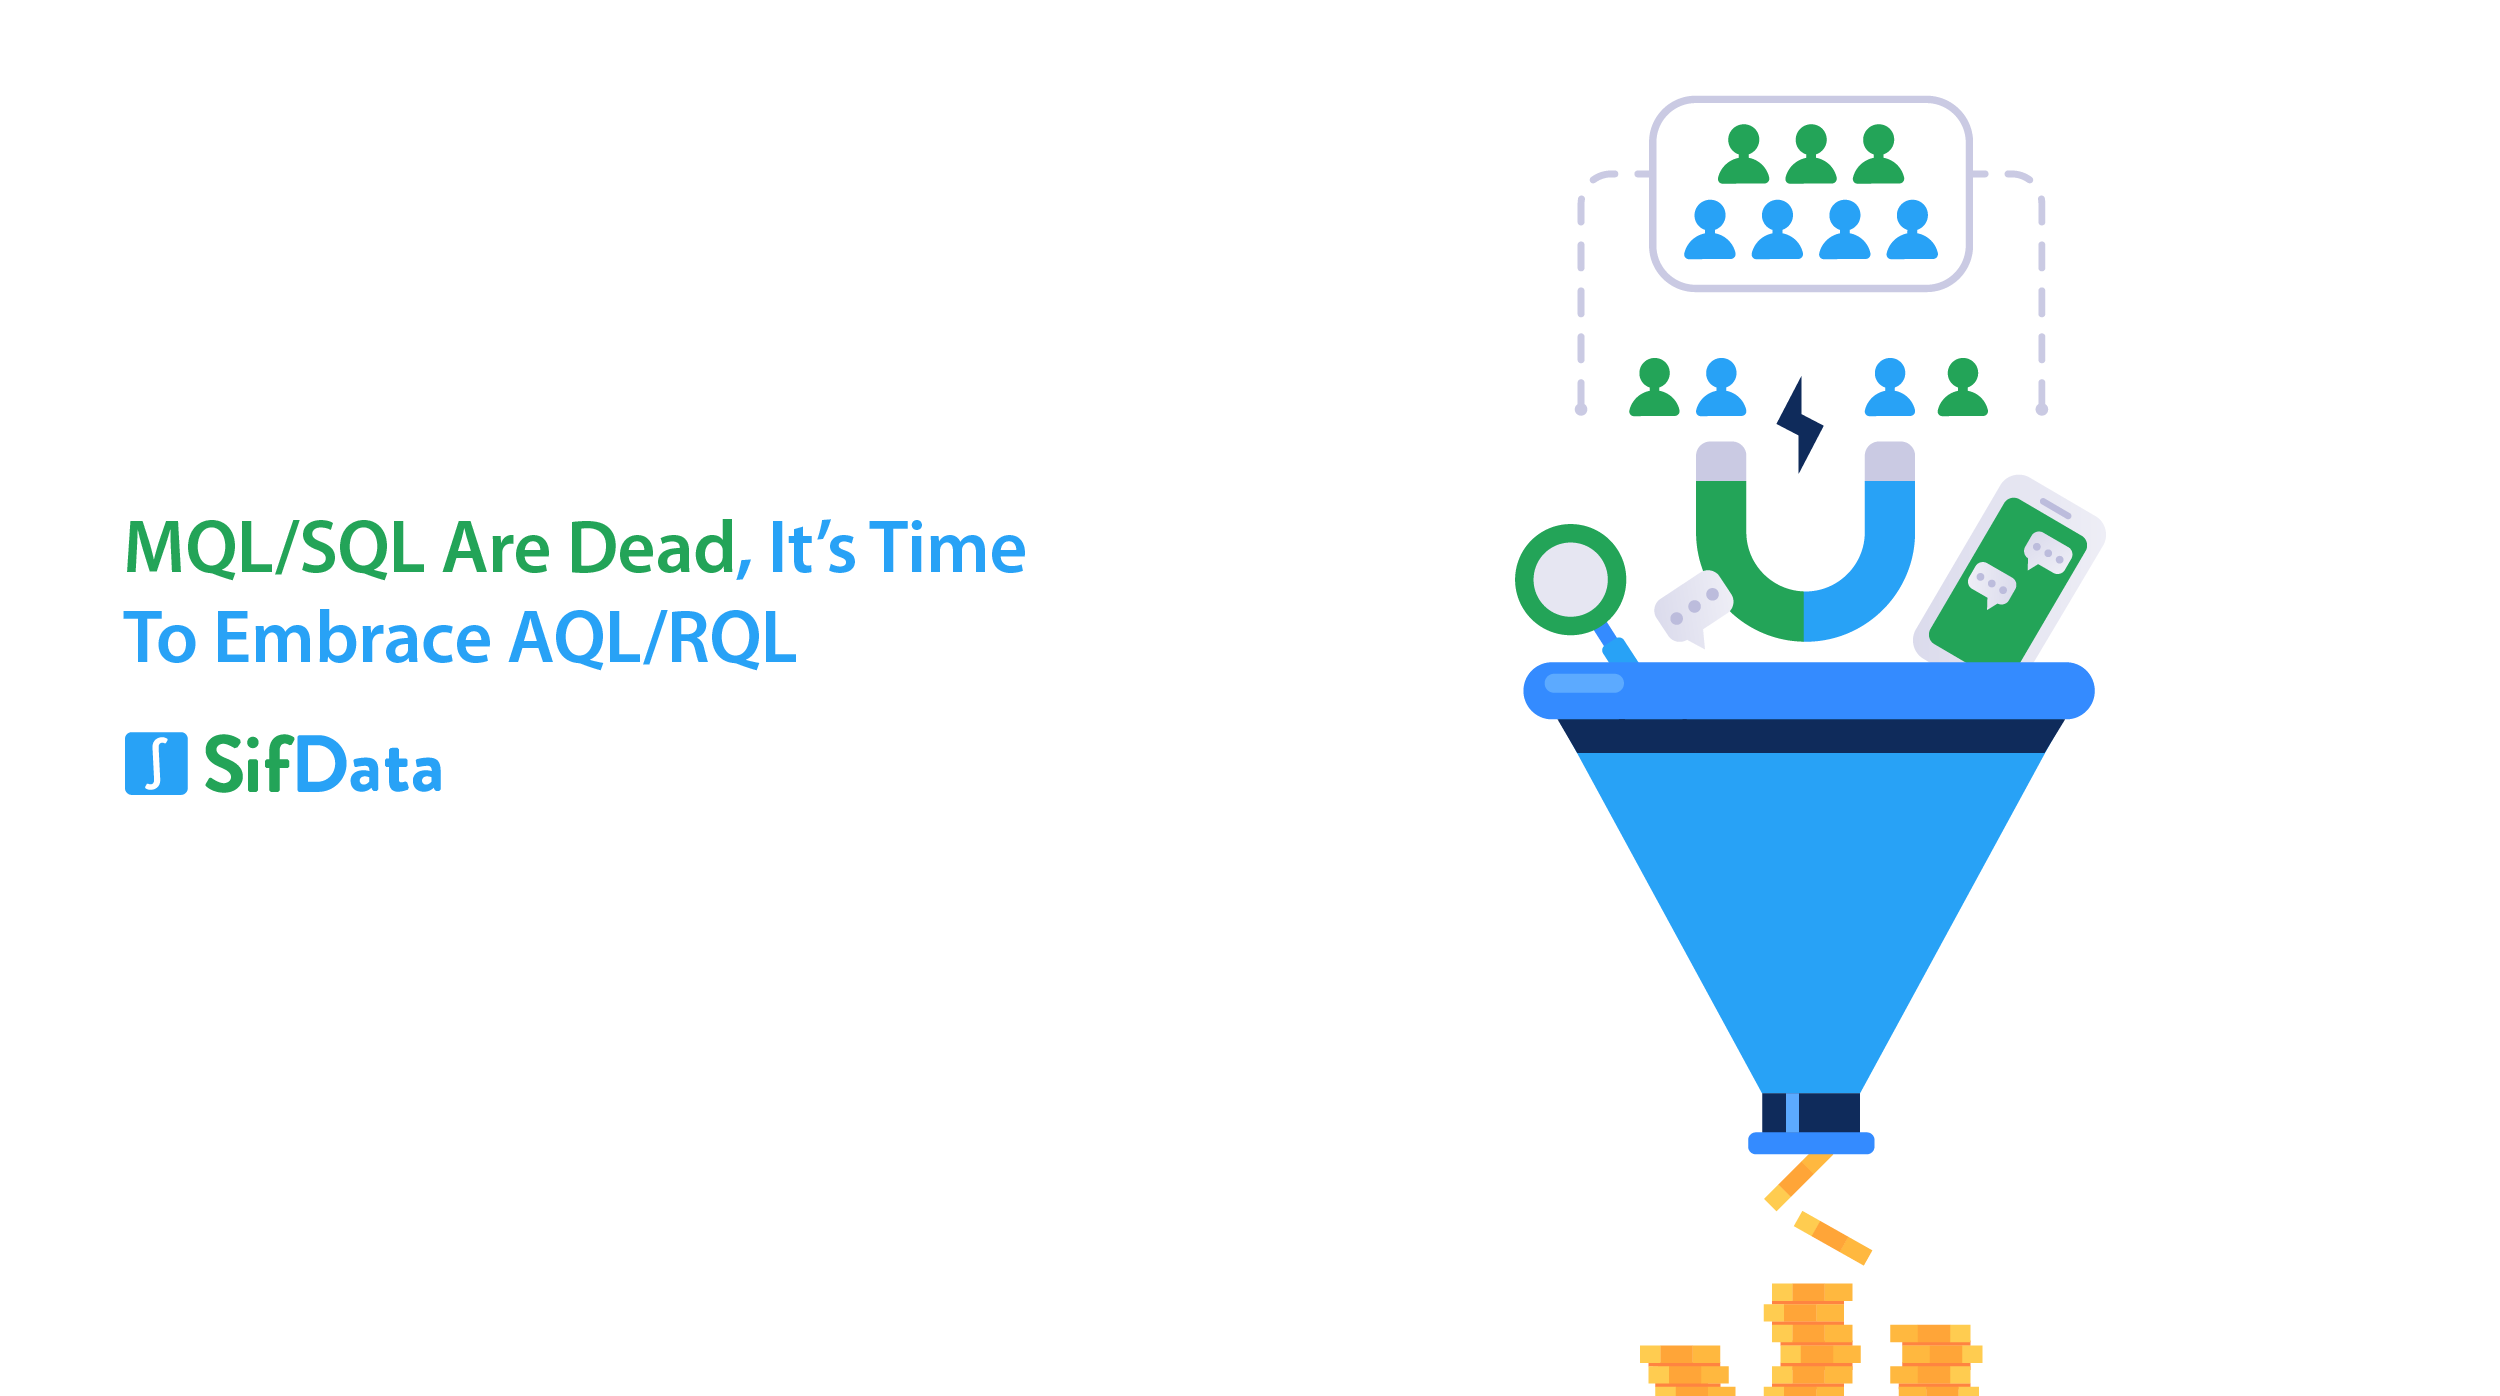 MQL/SQLS ARE DEAD, IT'S TIME TO EMBRACE AQL/RQL